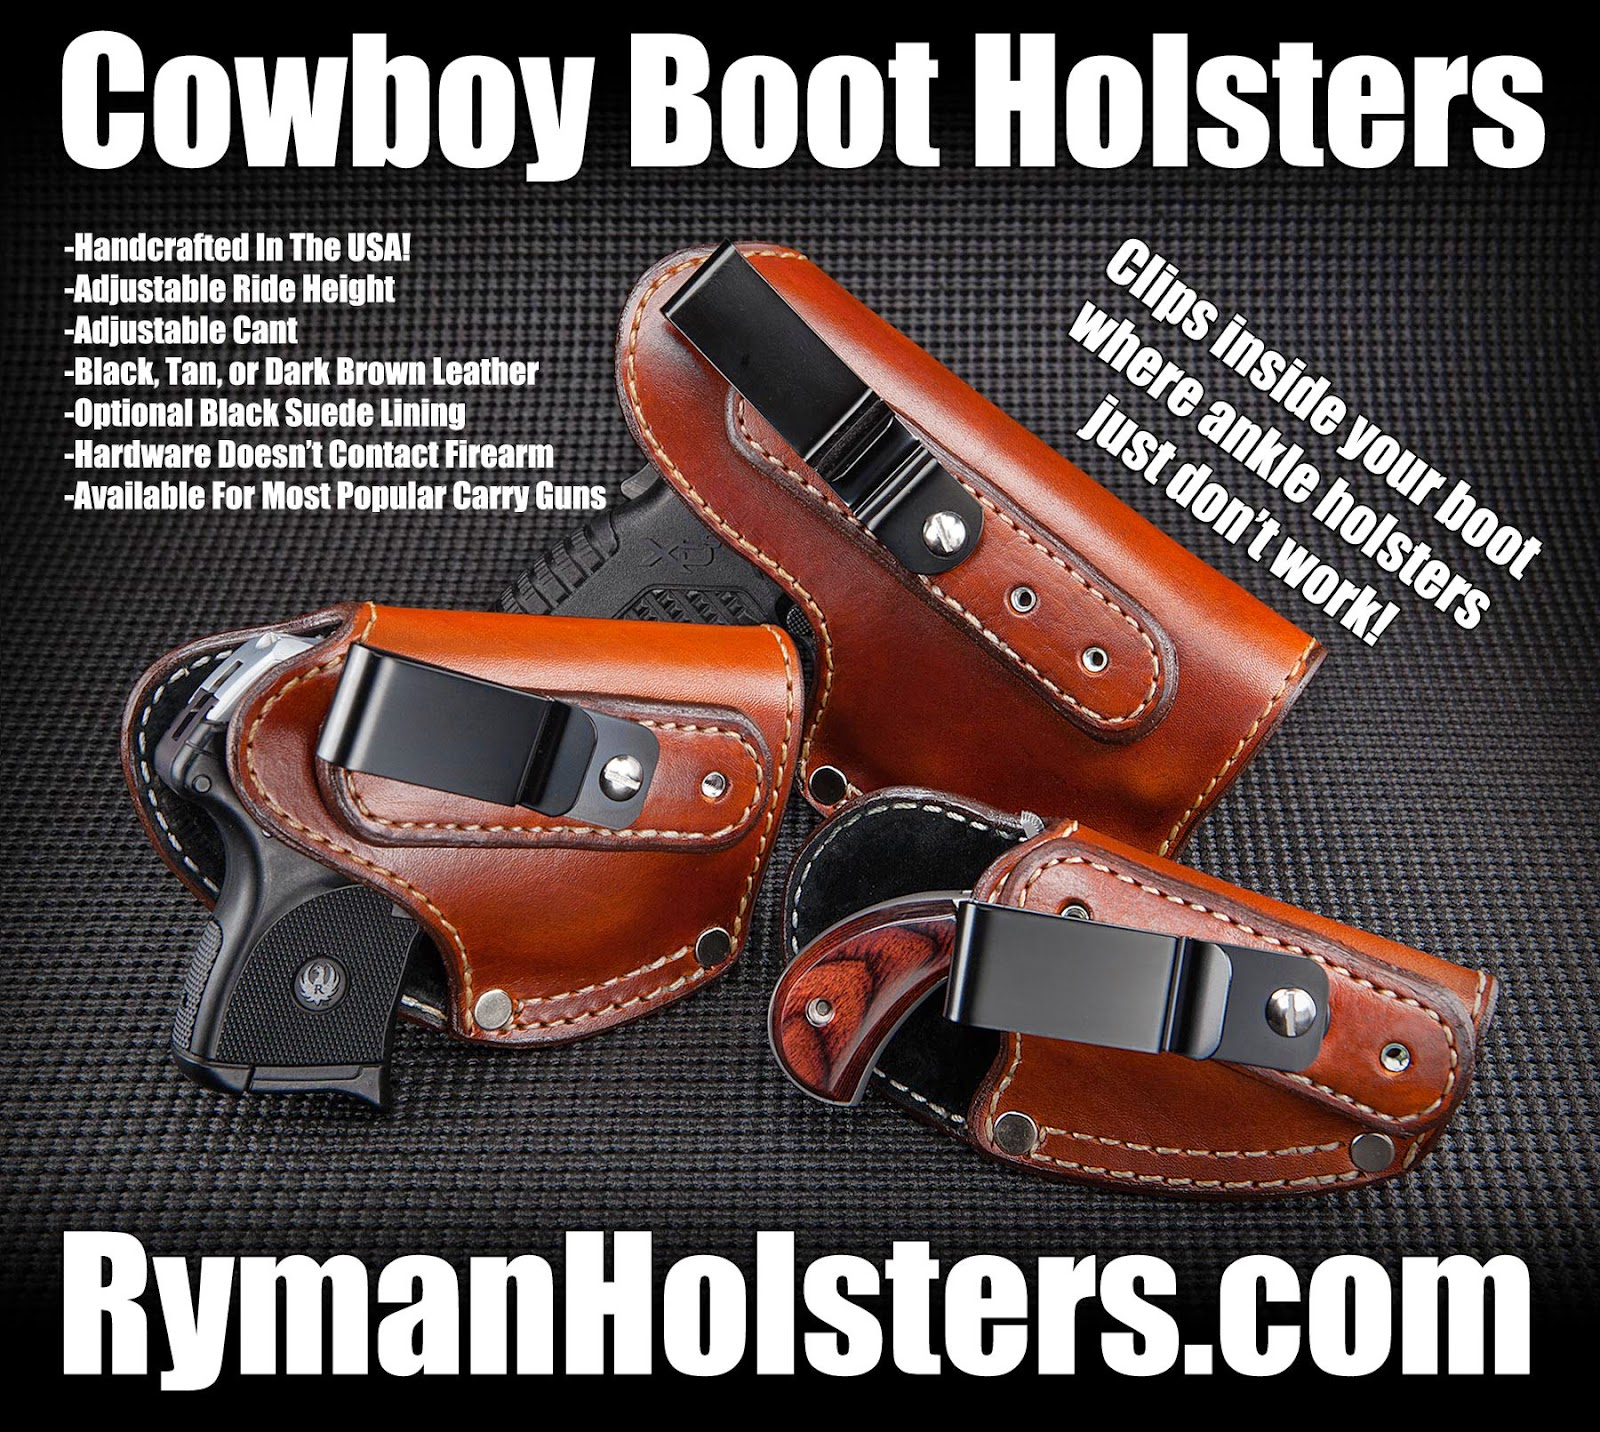 Ryman Holsters, Boot Holster, Cowboy Boot Holaster, Boot Ankle Holster, Ankle Holster, Leg Holster, Cowboy Holster